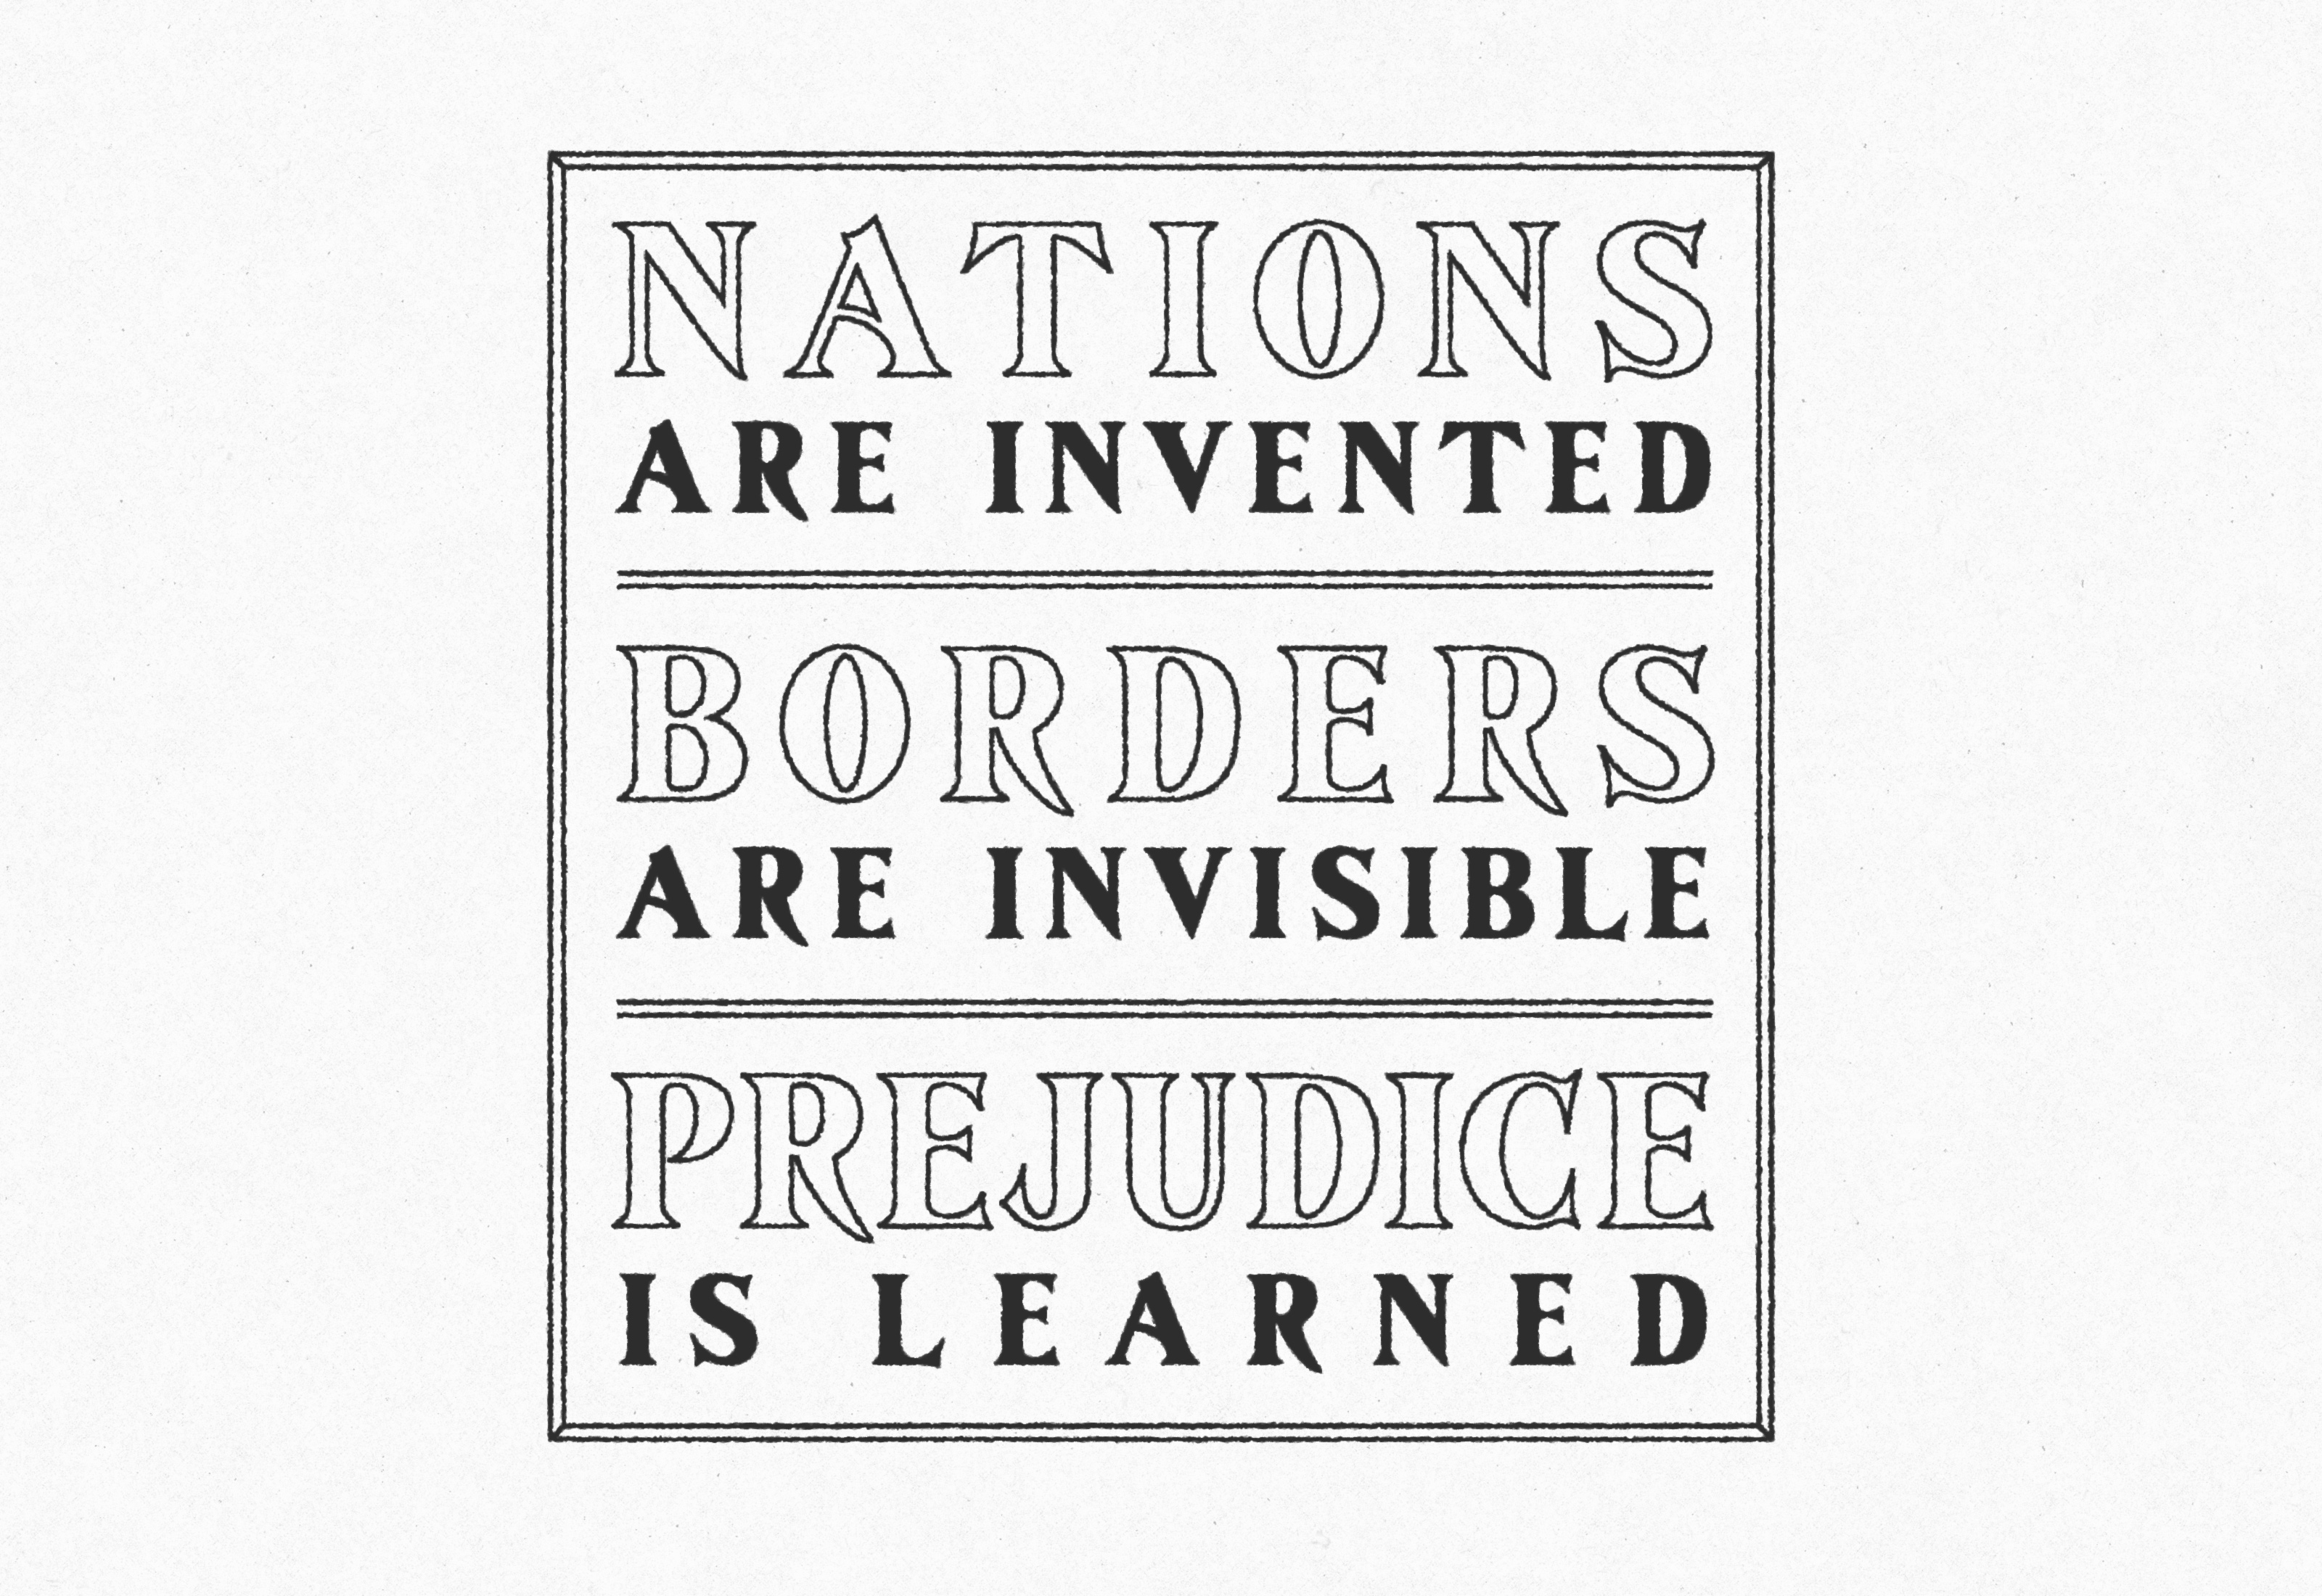 Nations Are Invented Borders Are Invisible Prejudice is Learned by Mark Lundberg